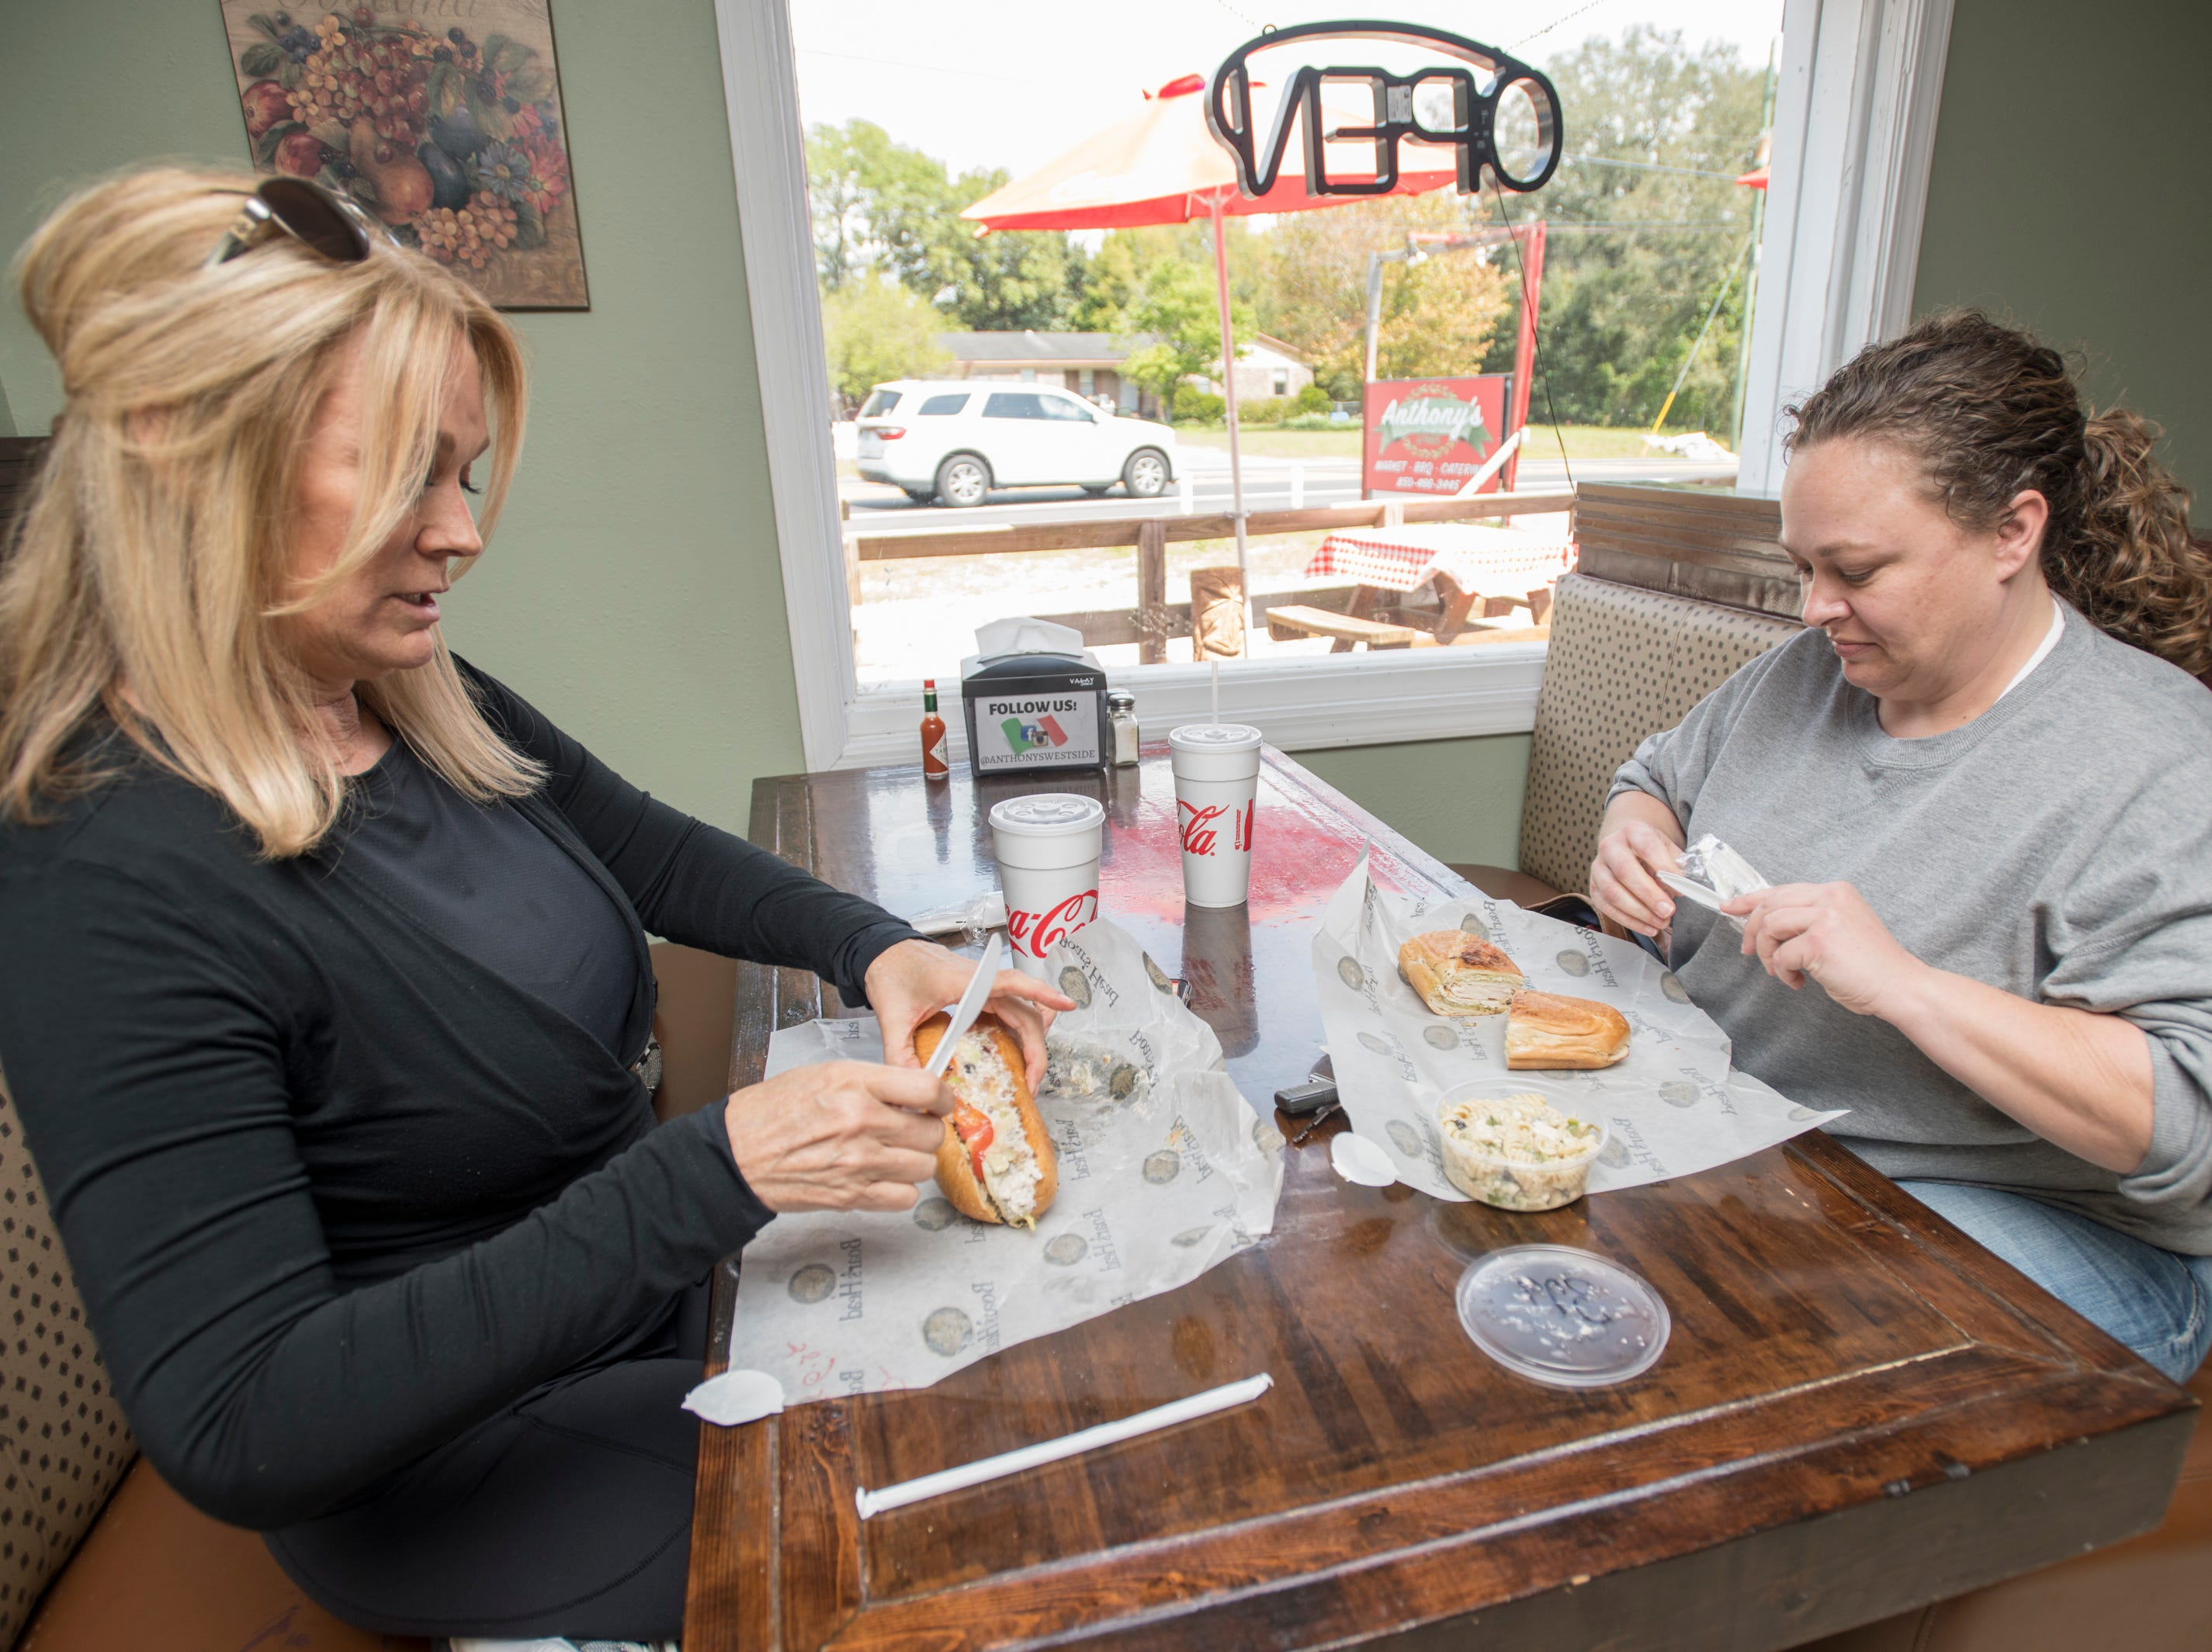 Jennifer Carlisle, left, and Monica Allen have lunch at Anthony's Deli on Lilian Highway in Pensacola on Monday, March 25, 2019.